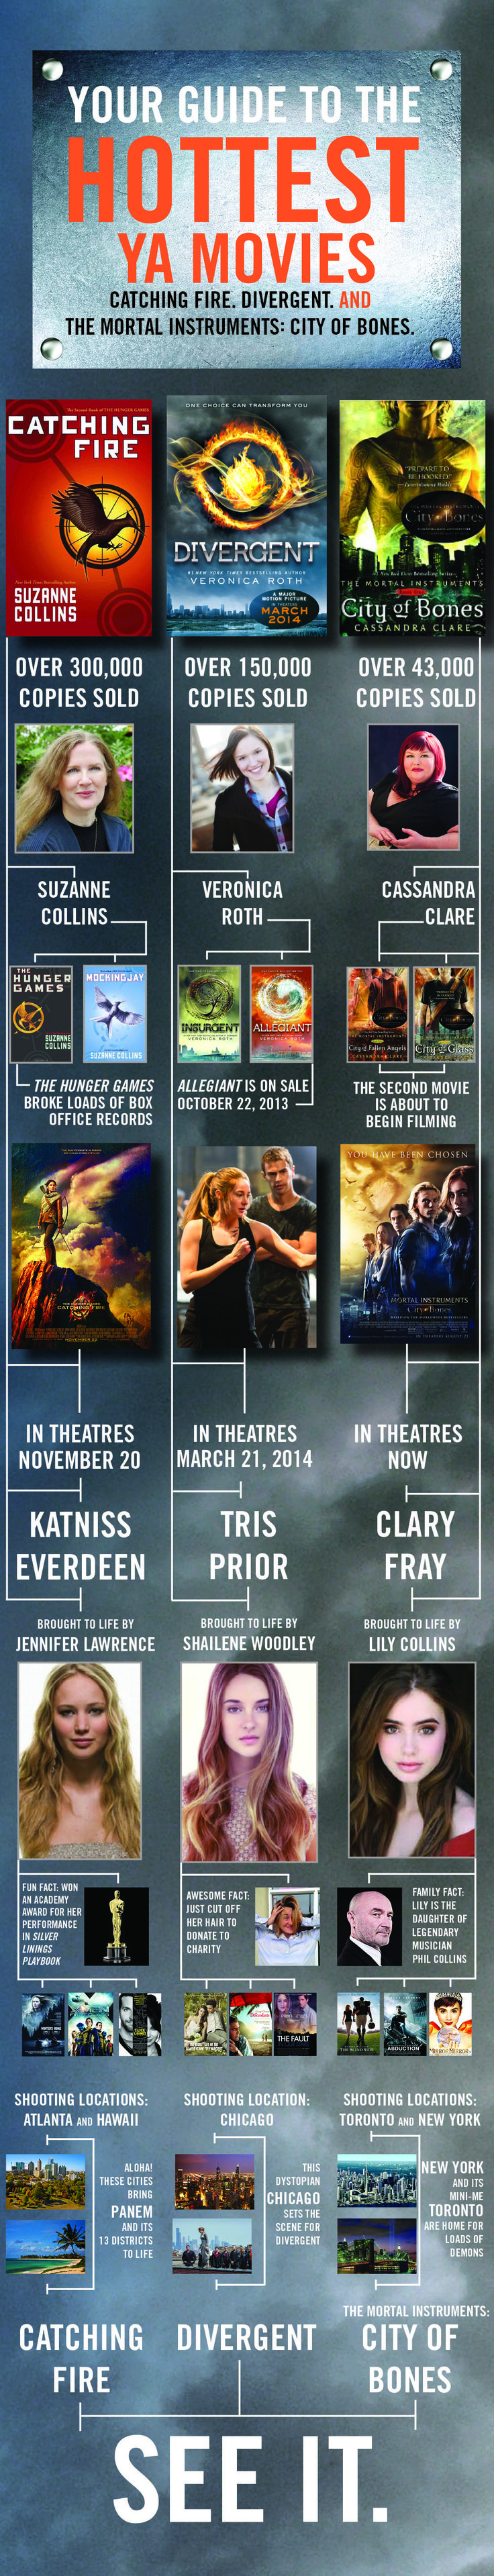 HCCFrenzy shares their guide to the Hottest YA Movies: Divergent, Catching Fire and City of Bones! #YA #Movies #Divergent #CityofBones #CatchingFire #infographic